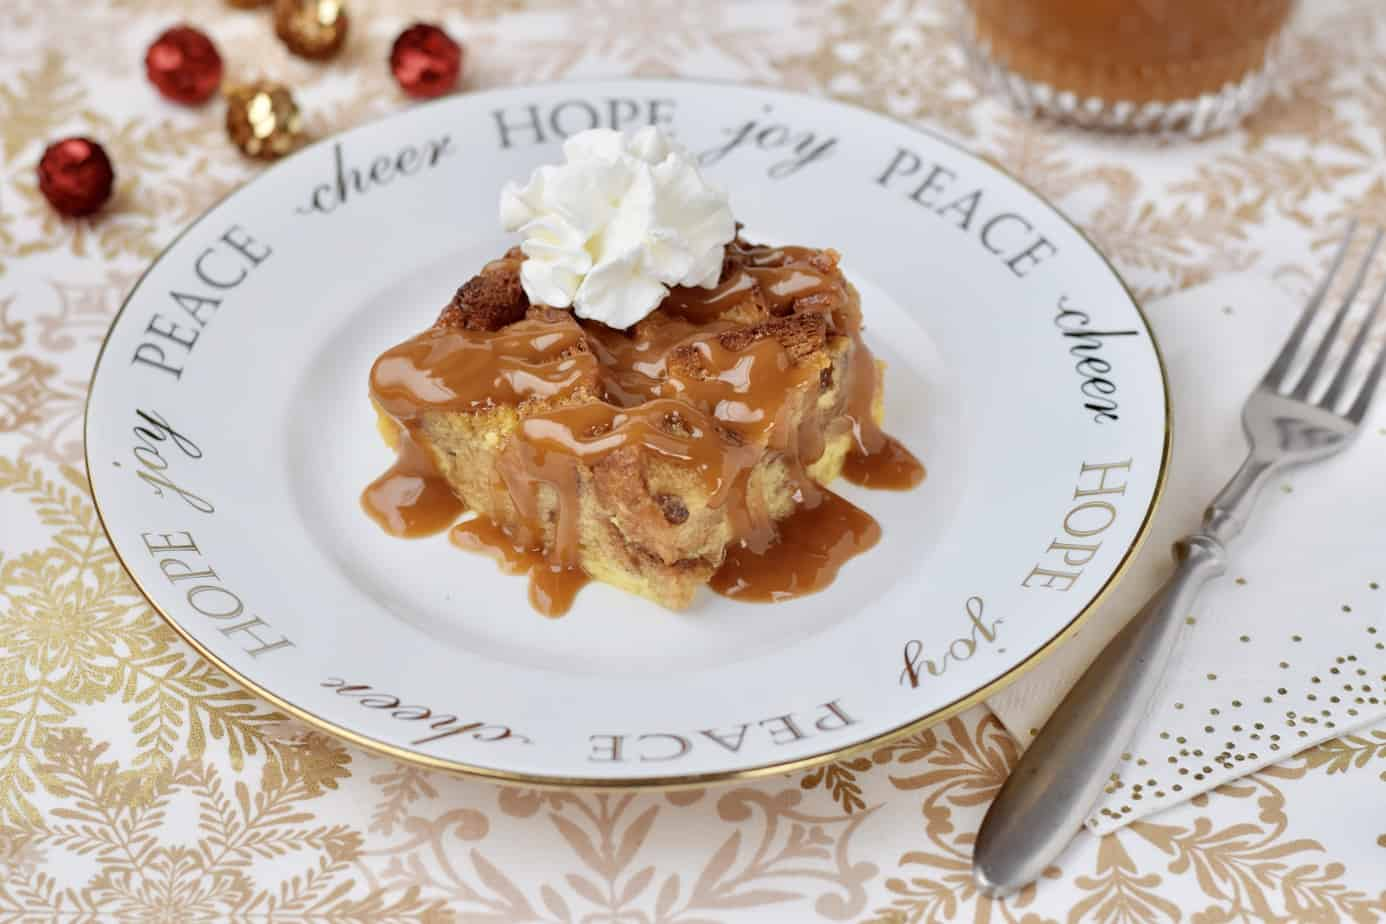 eggnog bread pudding with whipped cream photo by Elizabeth Ward, MS RD